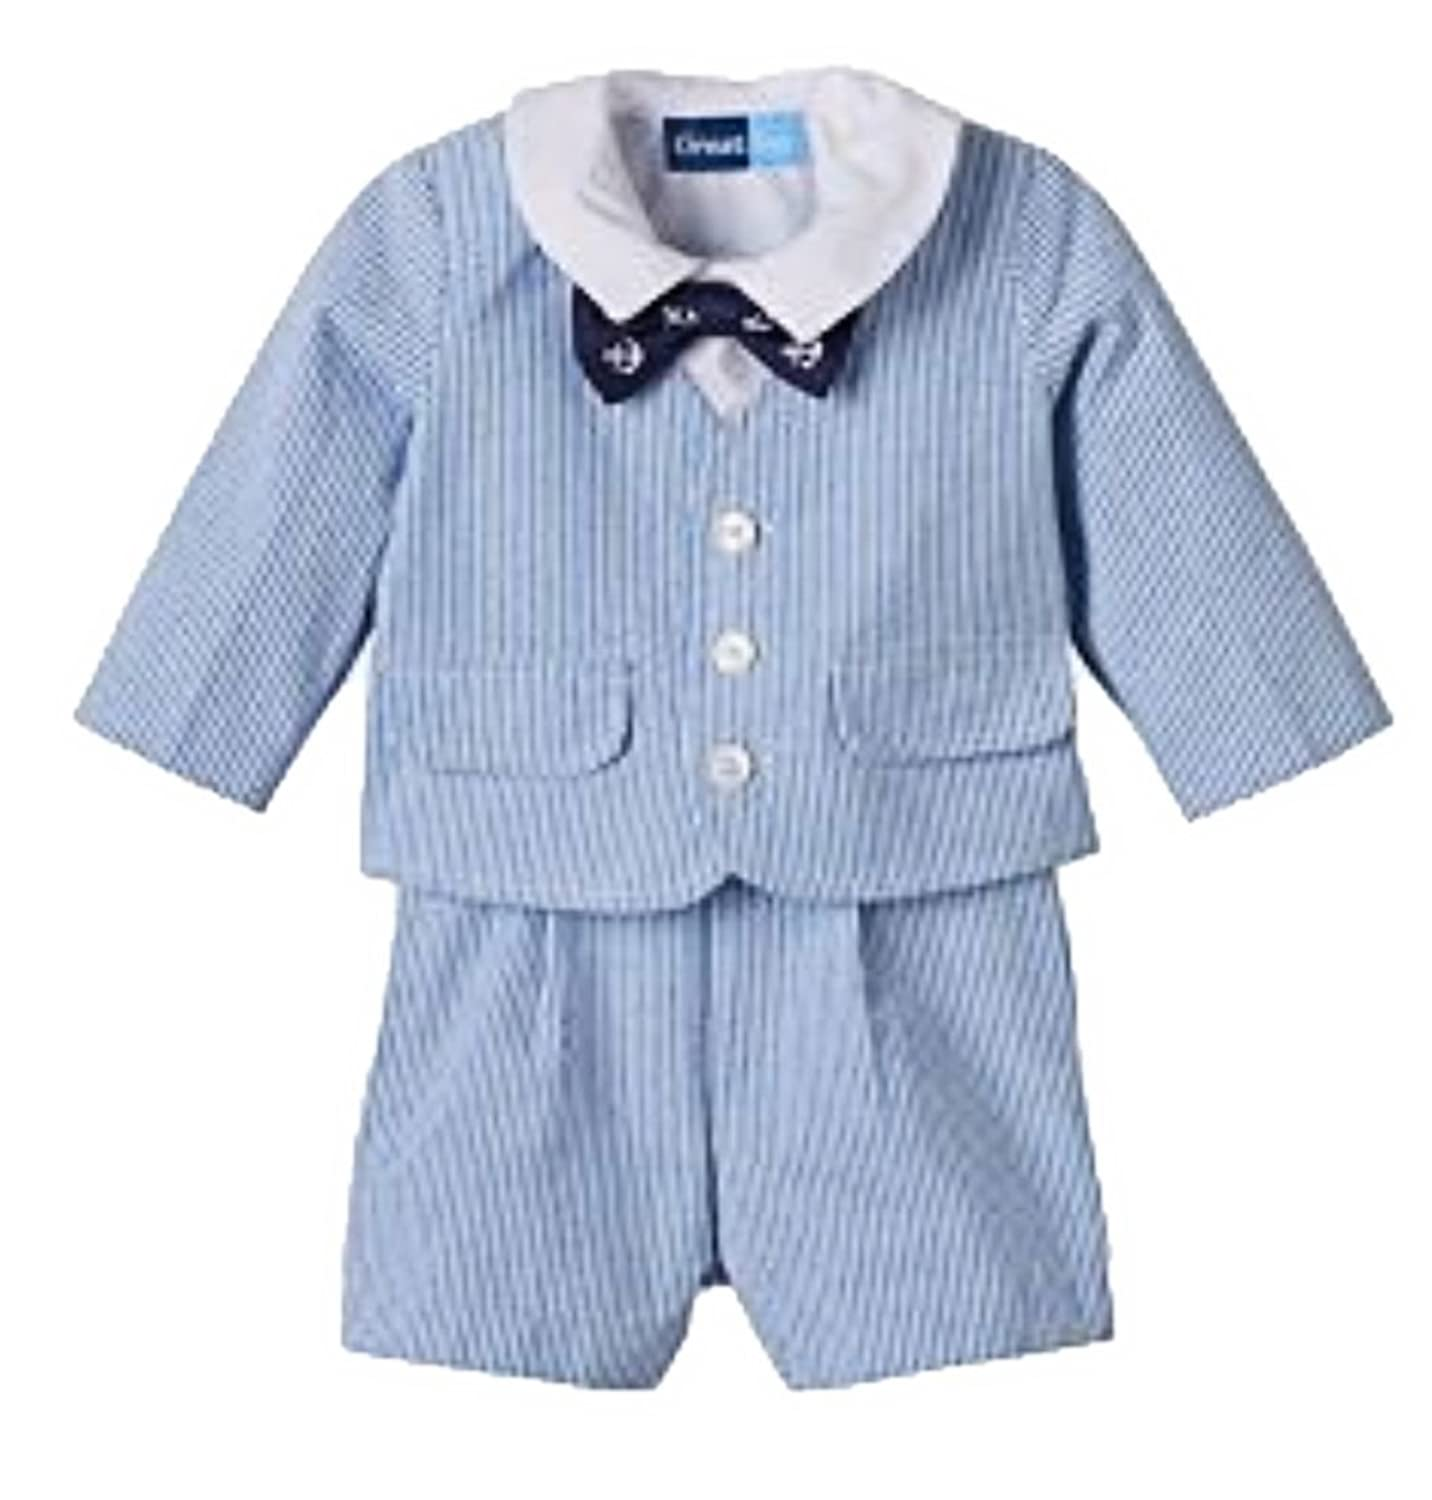 1920s Children Fashions: Girls, Boys, Baby Costumes Great Guy Boys 4-pc. Seersucker Suit Blue $44.99 AT vintagedancer.com